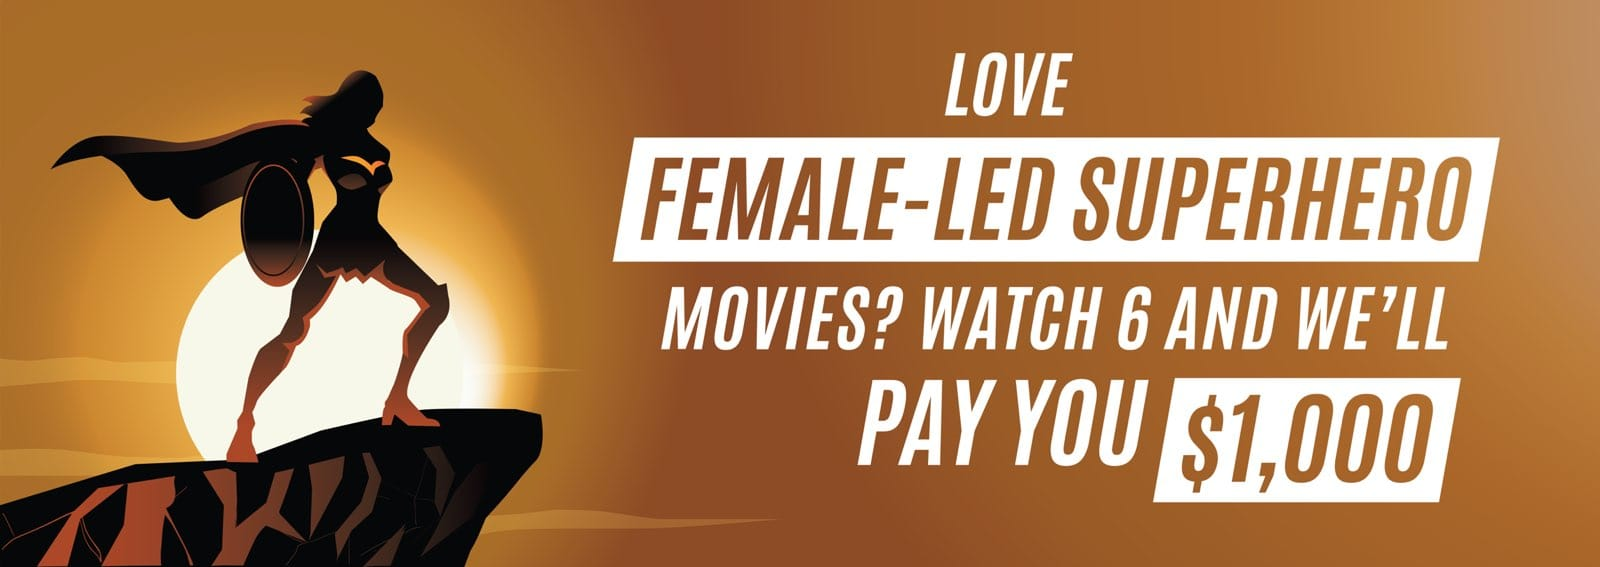 Love female-led superhero movies? Watch 6 and we'll pay you $1,000